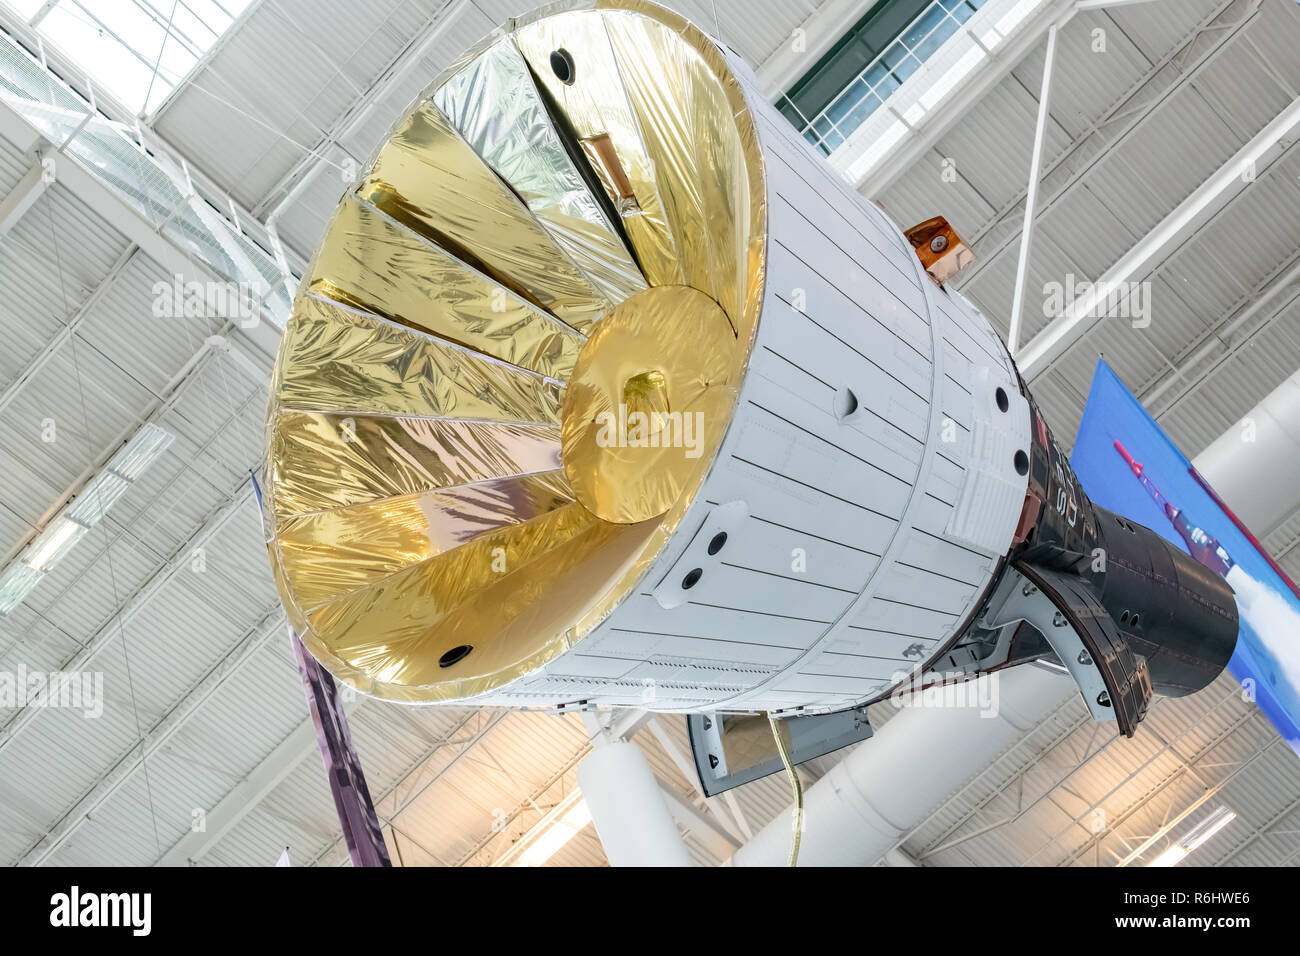 Replica of Gemini Spacecraft at Evergreen Aviation & Space Museum in McMinnville, Oregon - Stock Image